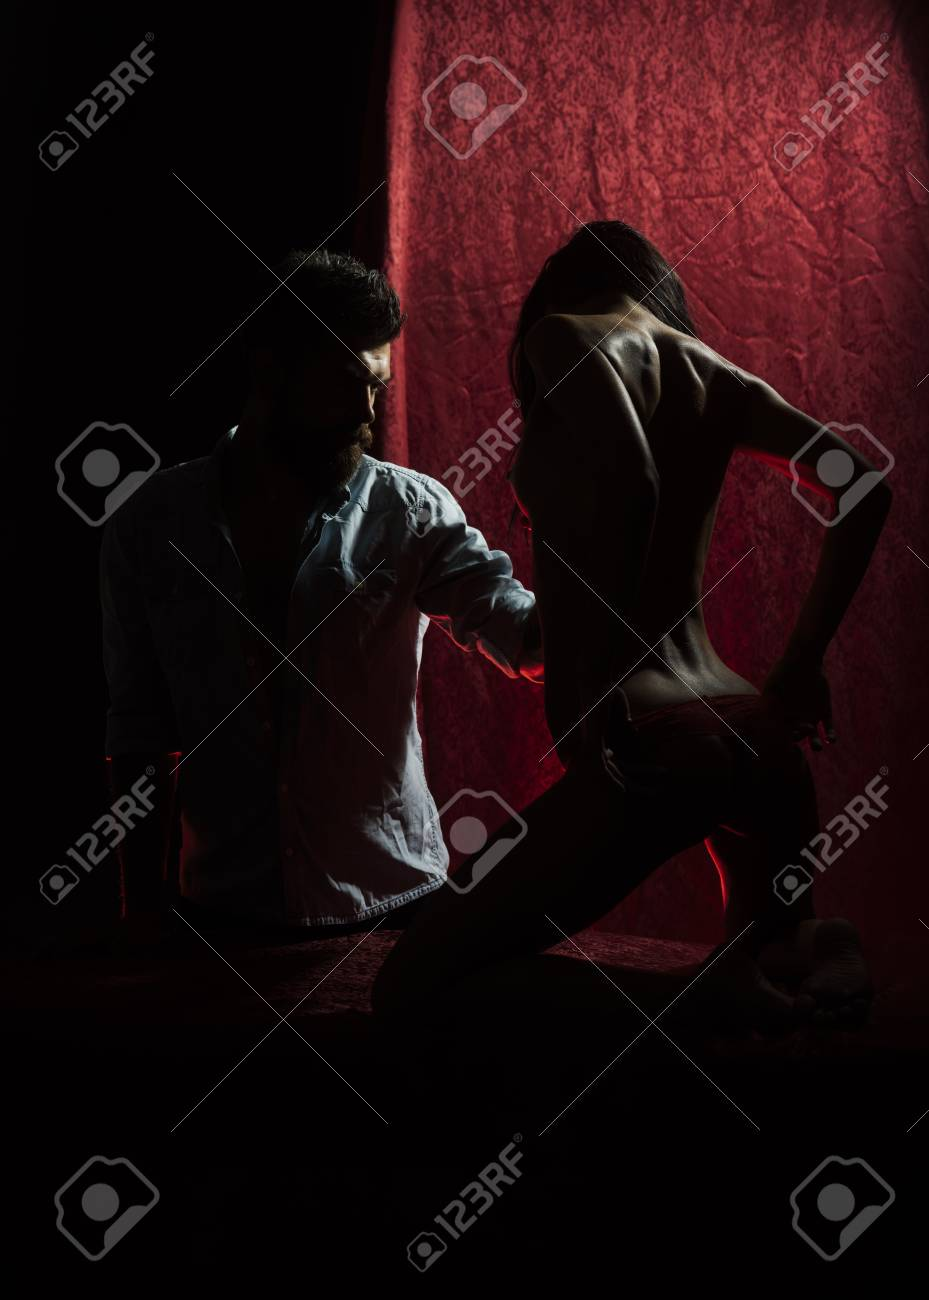 Romantic moment in the bedroom, couple in love - 100381076